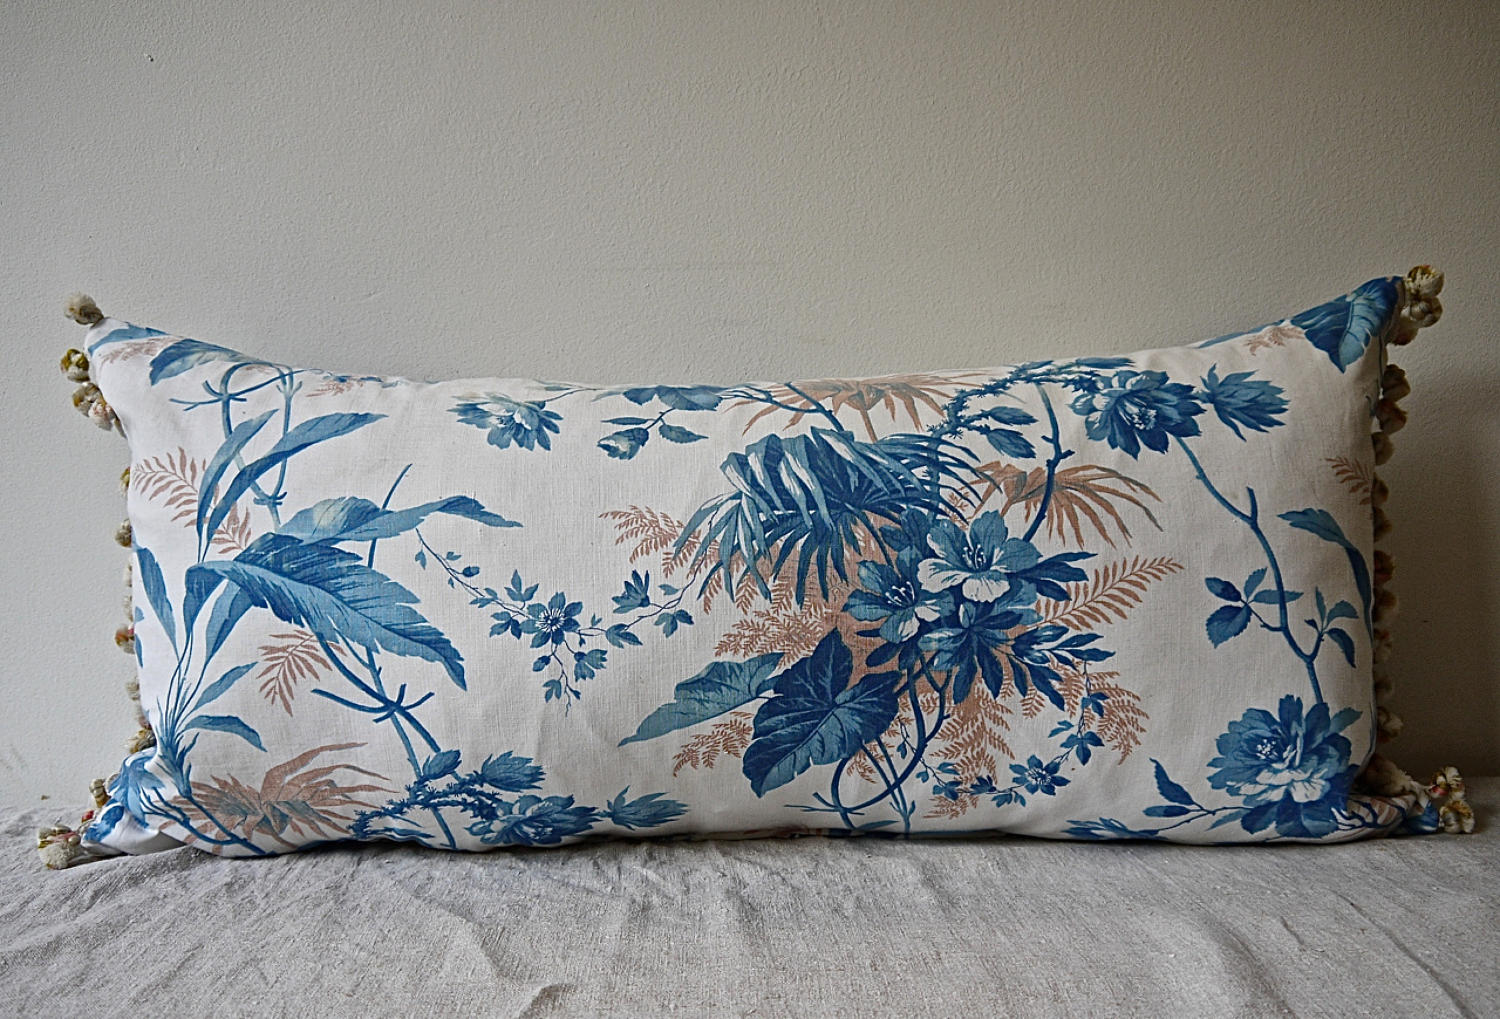 19th century French blue fern leaves cushion